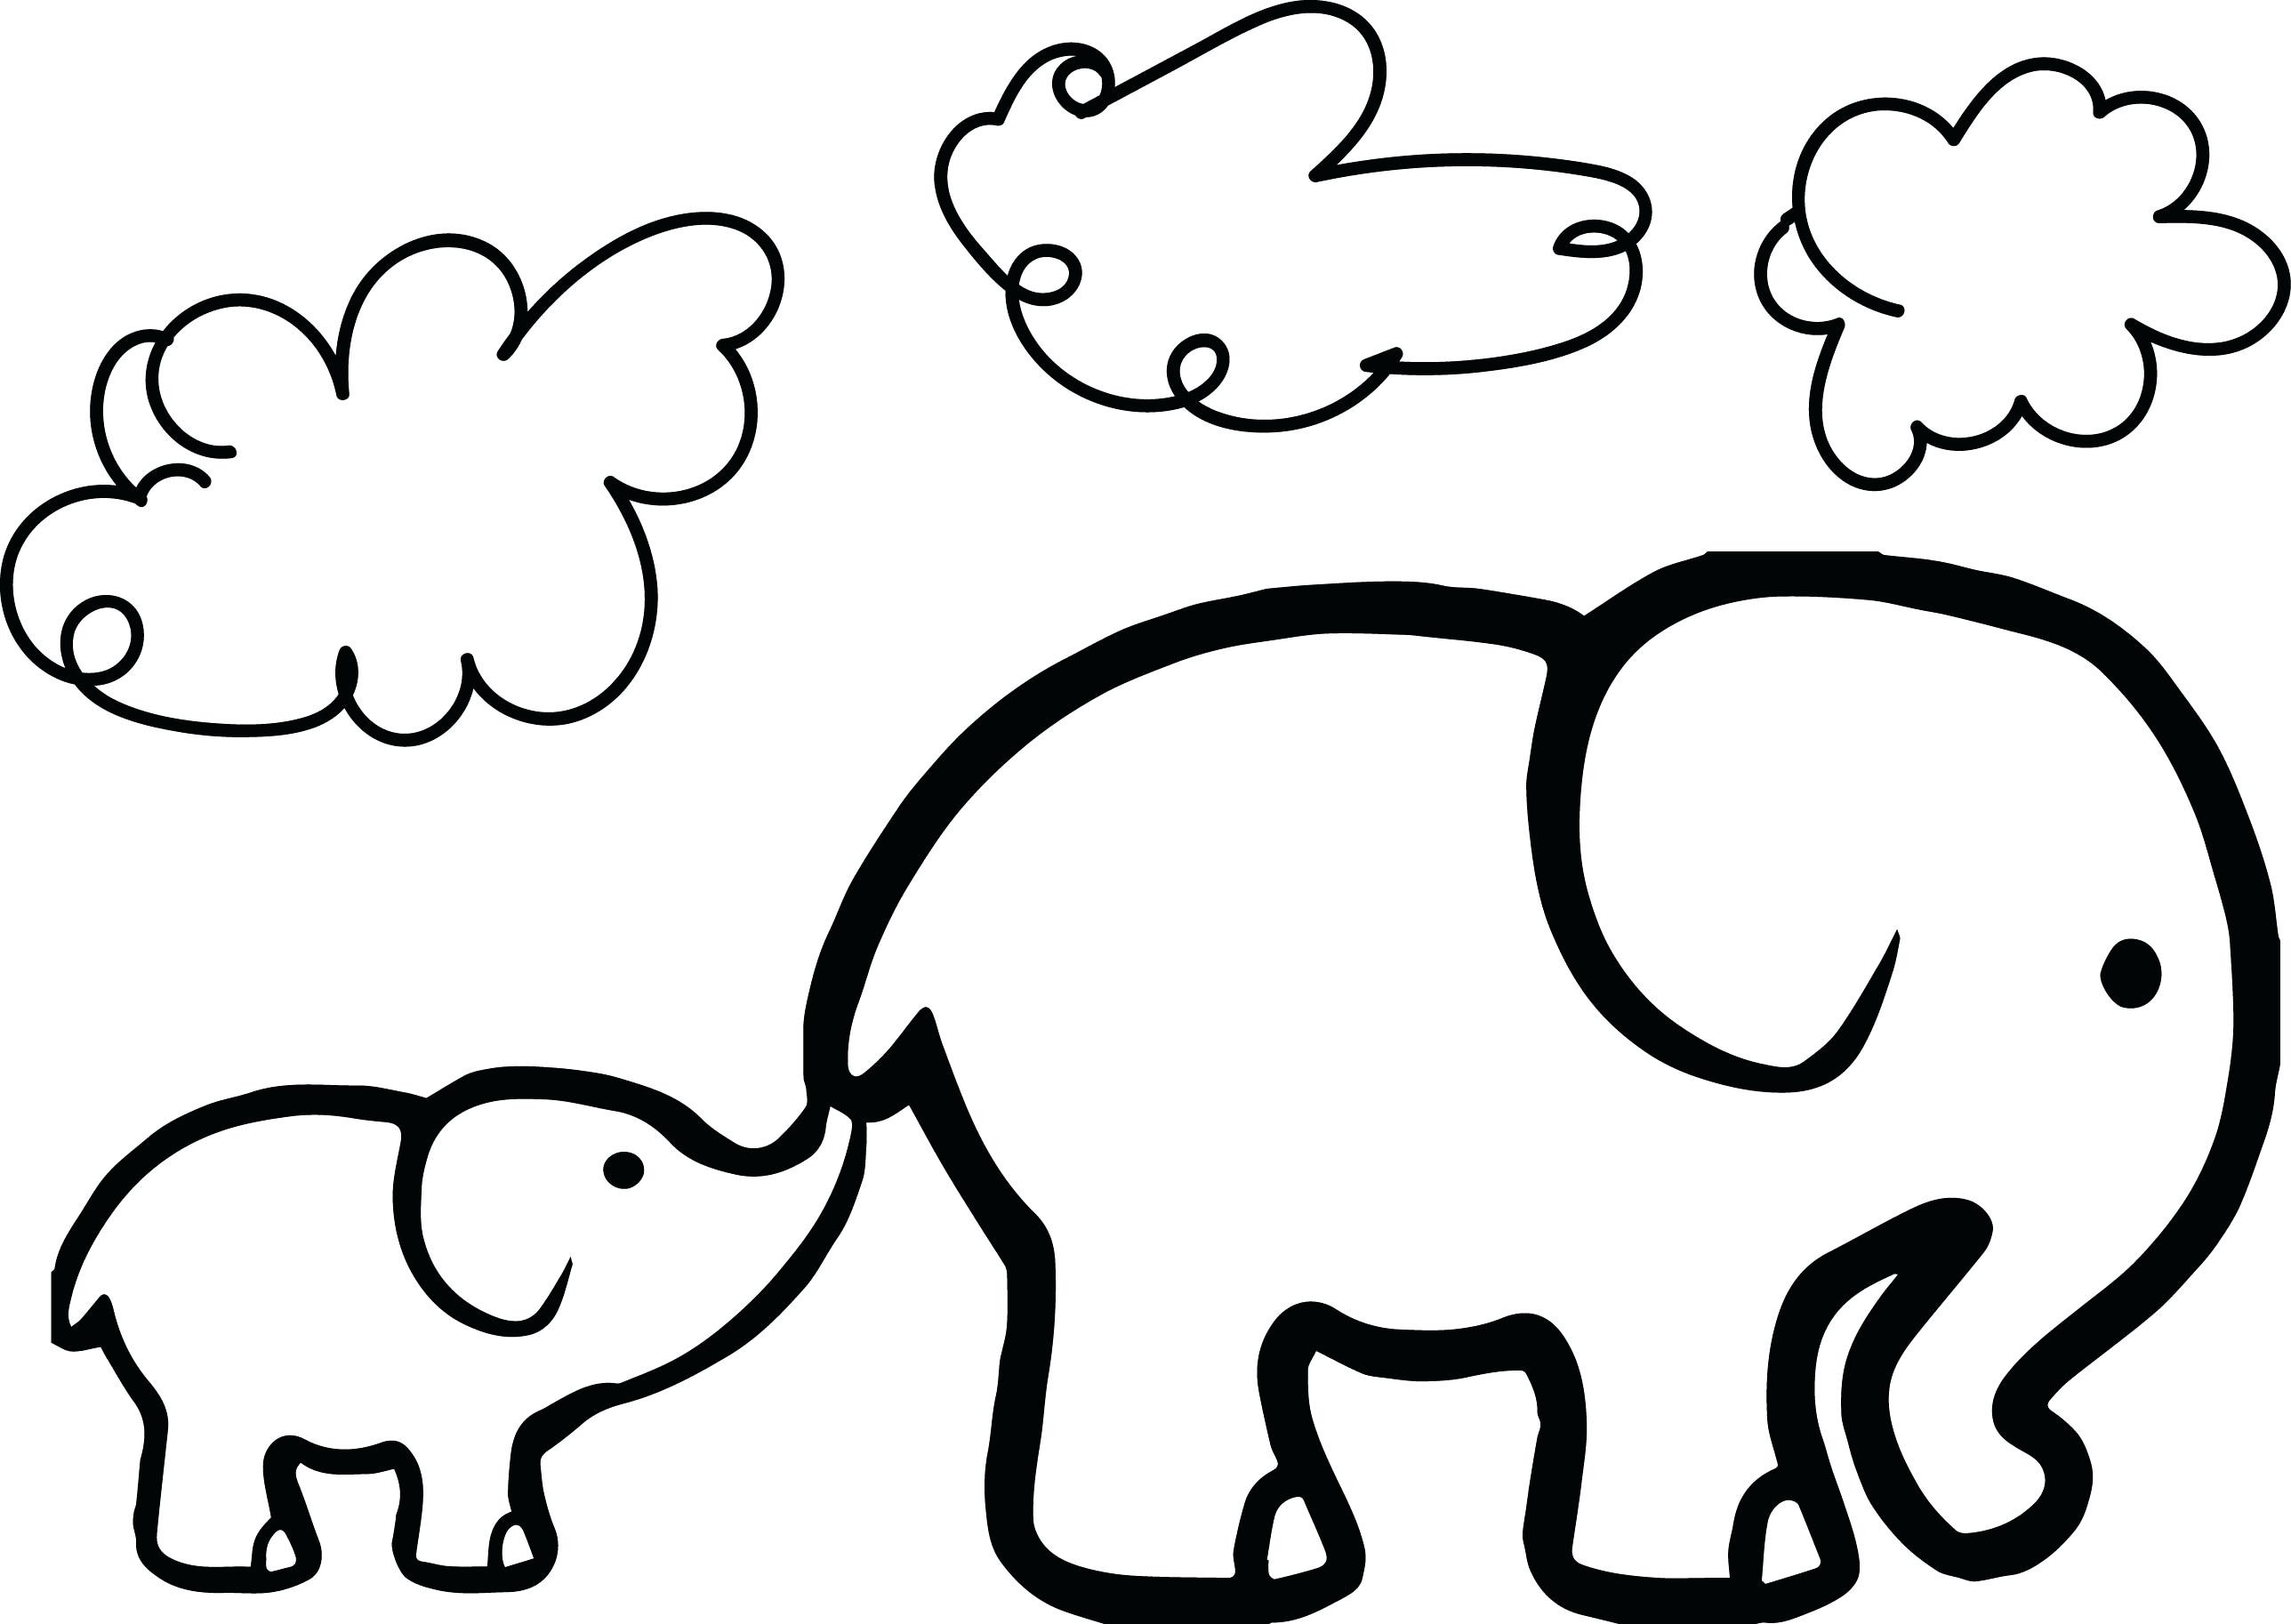 2576x1826 Elephant Head Adult Antistress Coloring Page Black White Hand